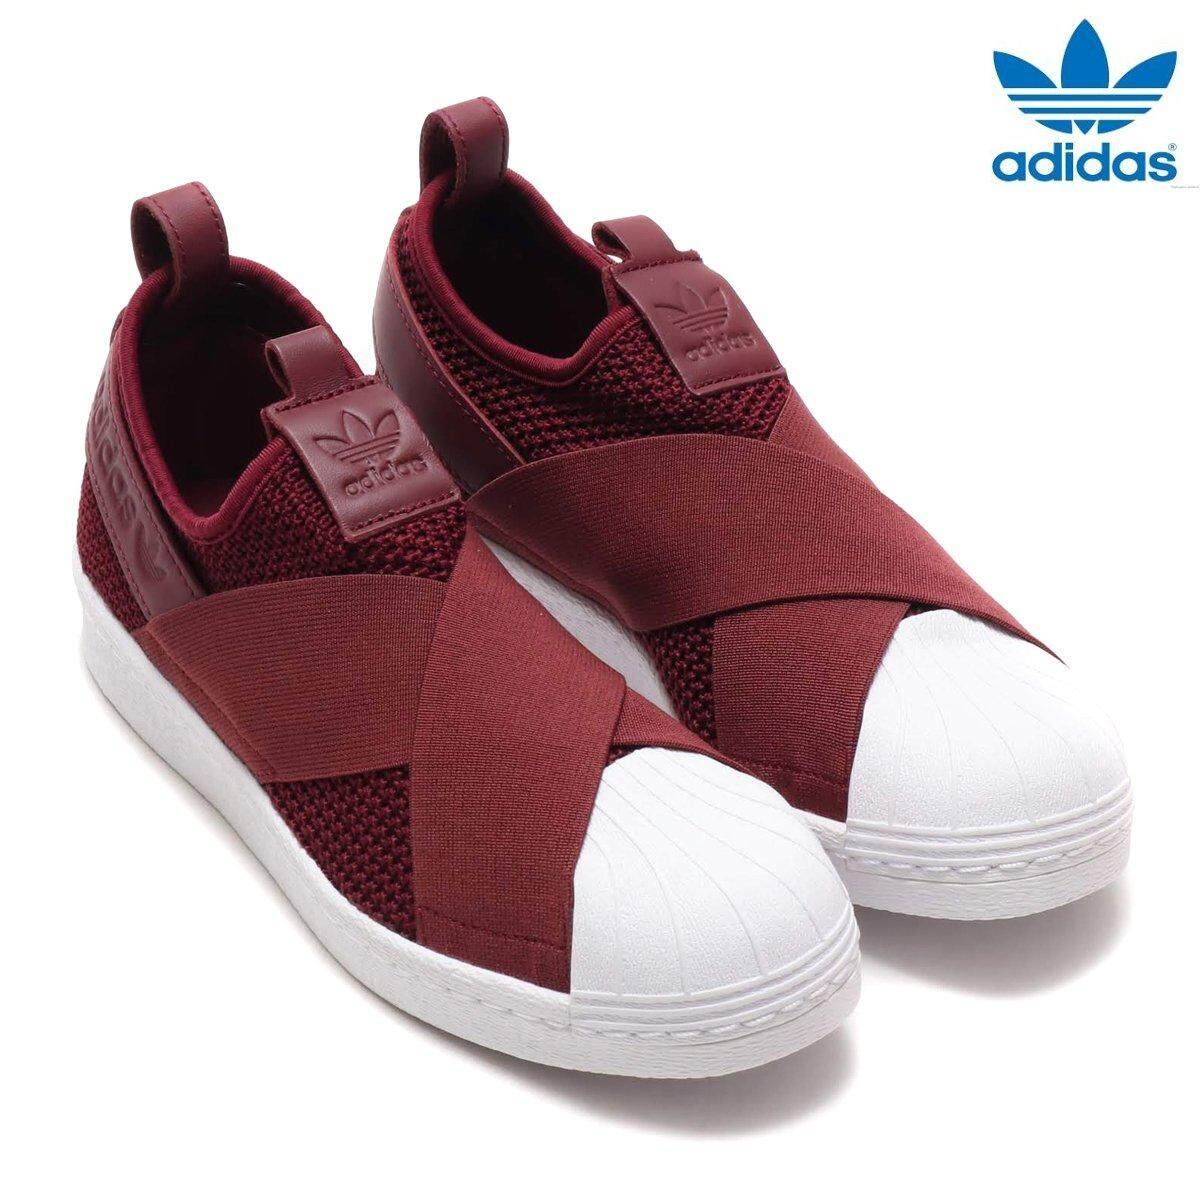 Adidas Women s Shoes price in Malaysia - Best Adidas Women s Shoes ... 53f3a74b1